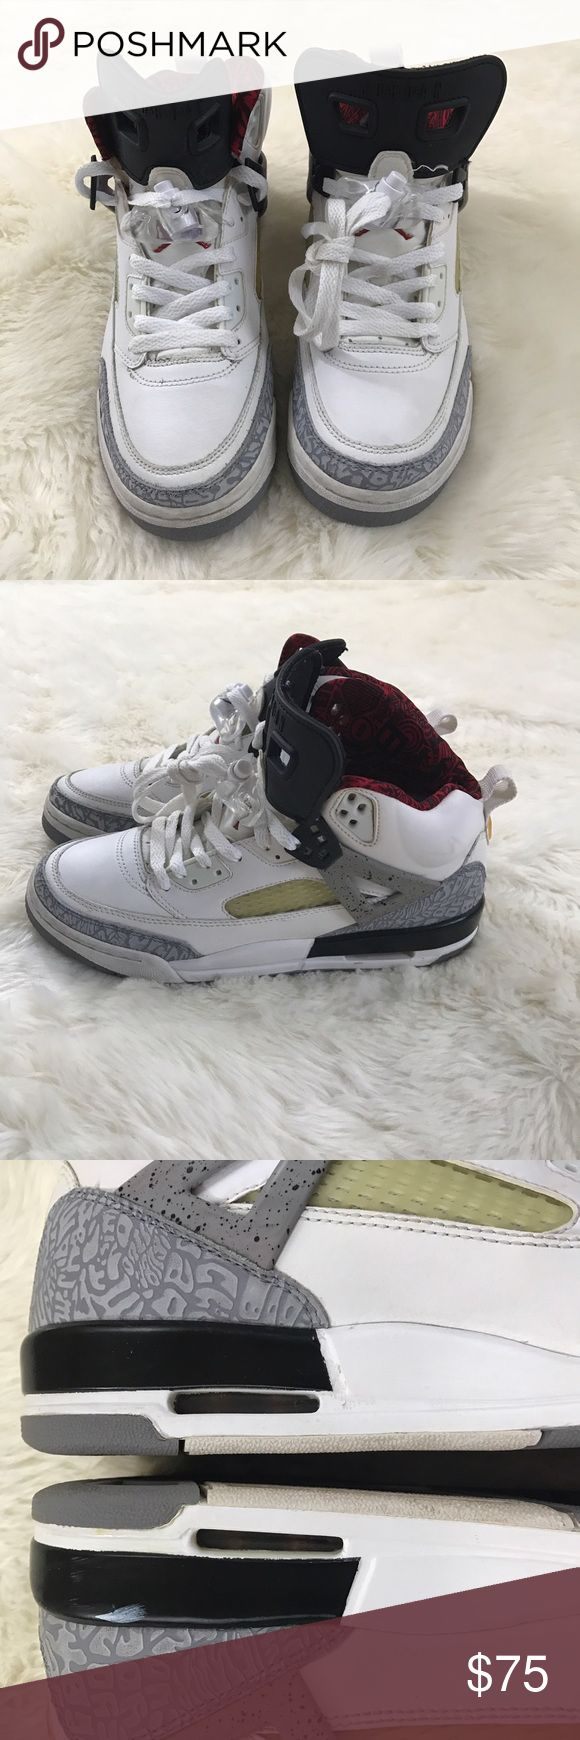 Nike Jordan Spizike 6.5Y Cement Mars Spike Lee These are from 2007 Jordan Spizike youth size 6.5Y these are a classic  Does not have original box   Sneakers have been worn many times: signs of wear for their age there isn't much cracking of the paint. There is yellowing on the sides and toe box. These are not new again used but still in good condition for age. These are a classic and hard to come by The inside logo has peeled off   Please see pictures for more details Nike Shoes Sneakers